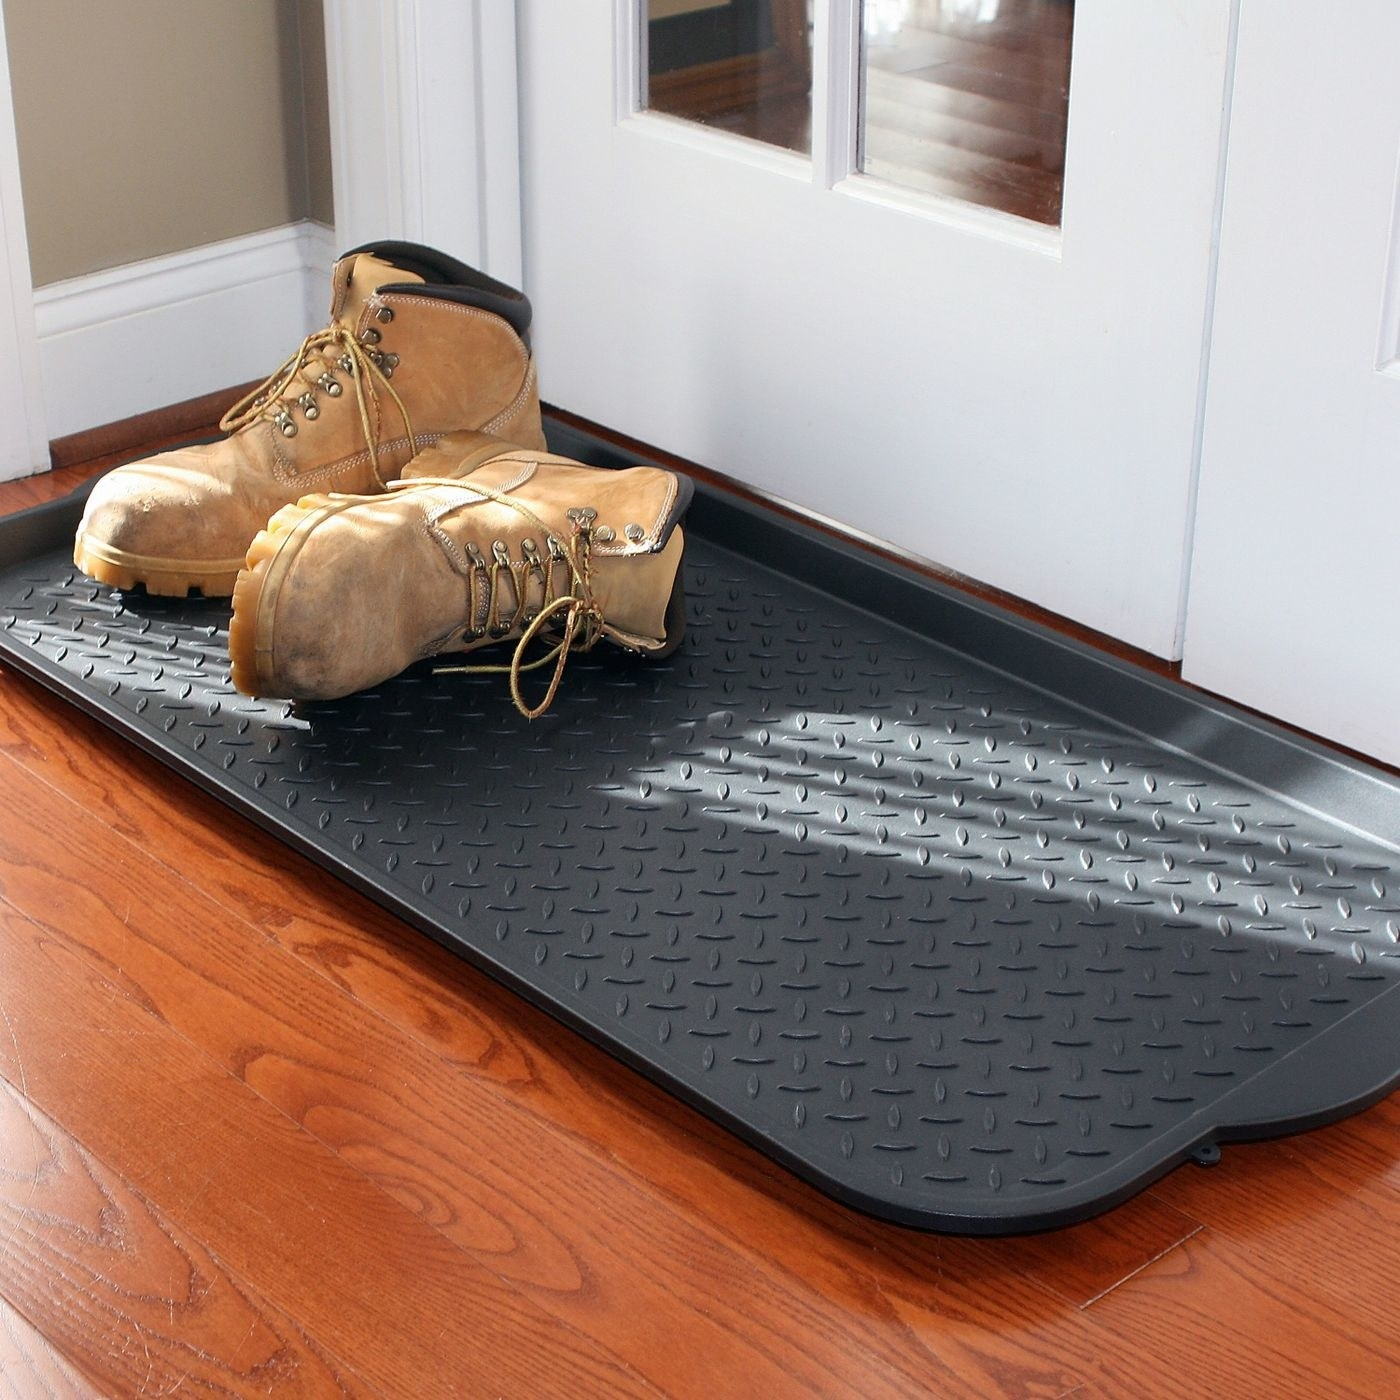 The plastic floor mat with biking books on it